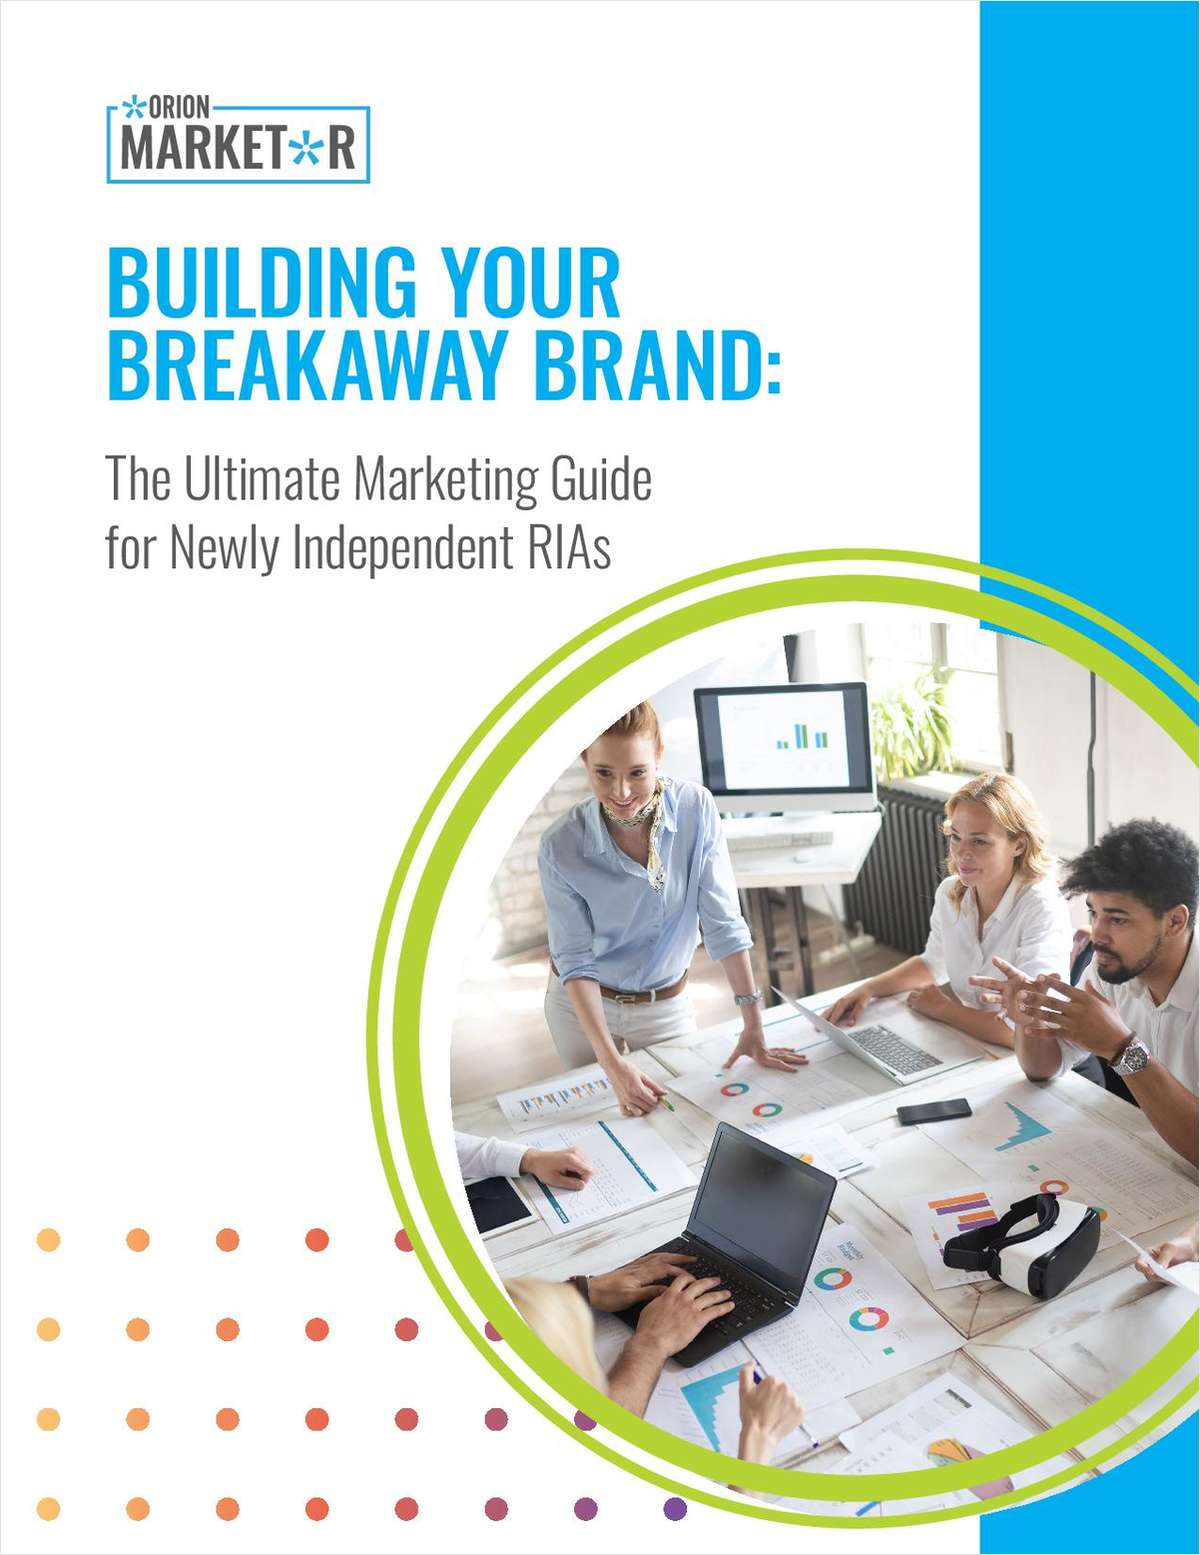 Building Your Breakaway Brand: The Ultimate Marketing Guide for Newly Independent RIAs